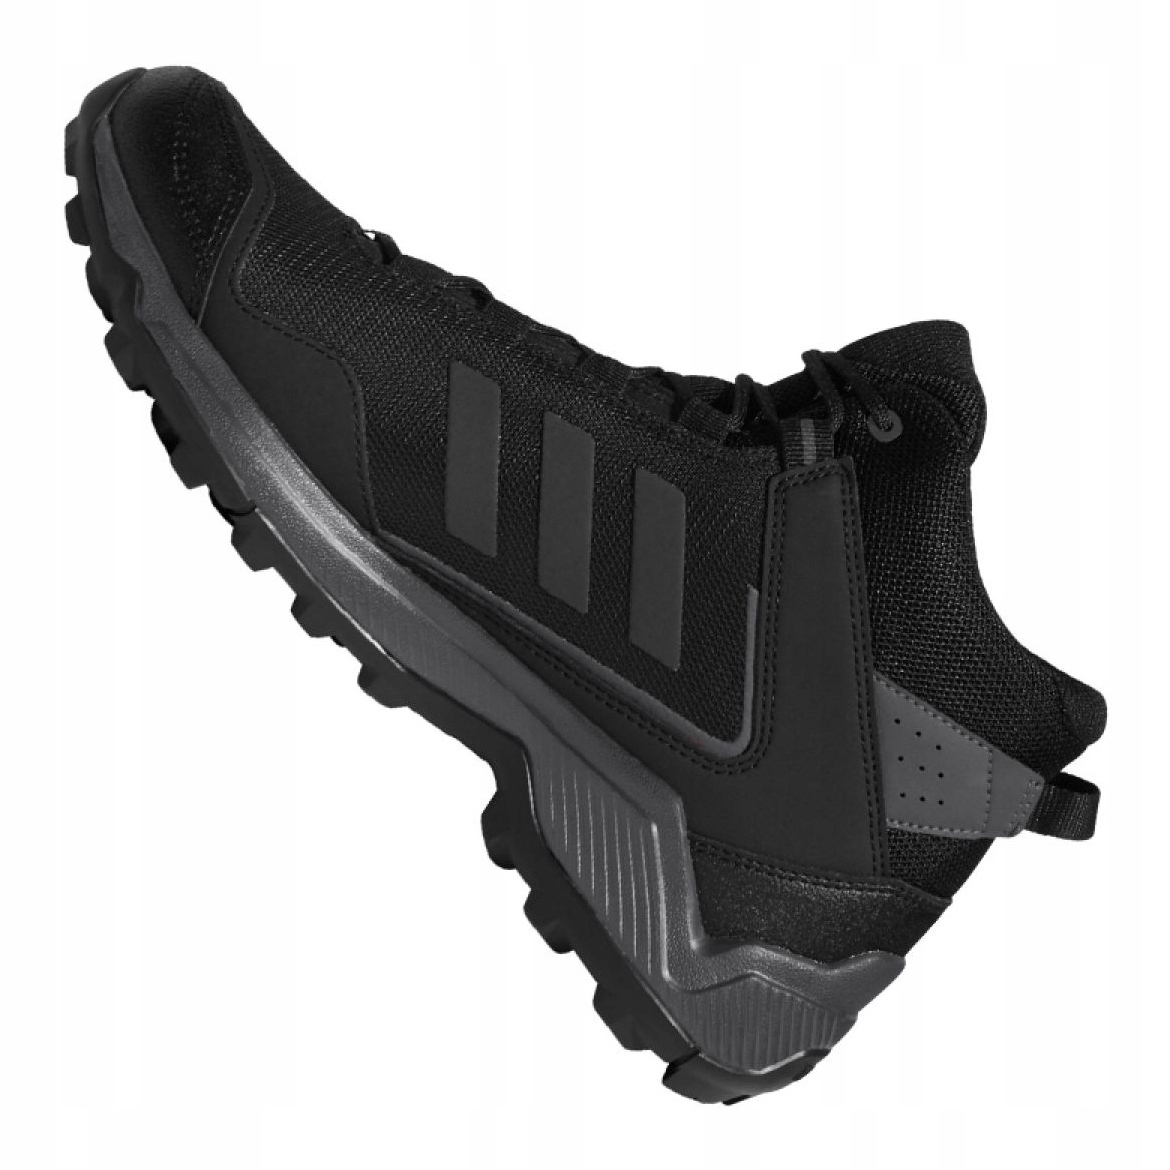 Details about Adidas Terrex Eastrail Mid Gtx M F36760 shoes black